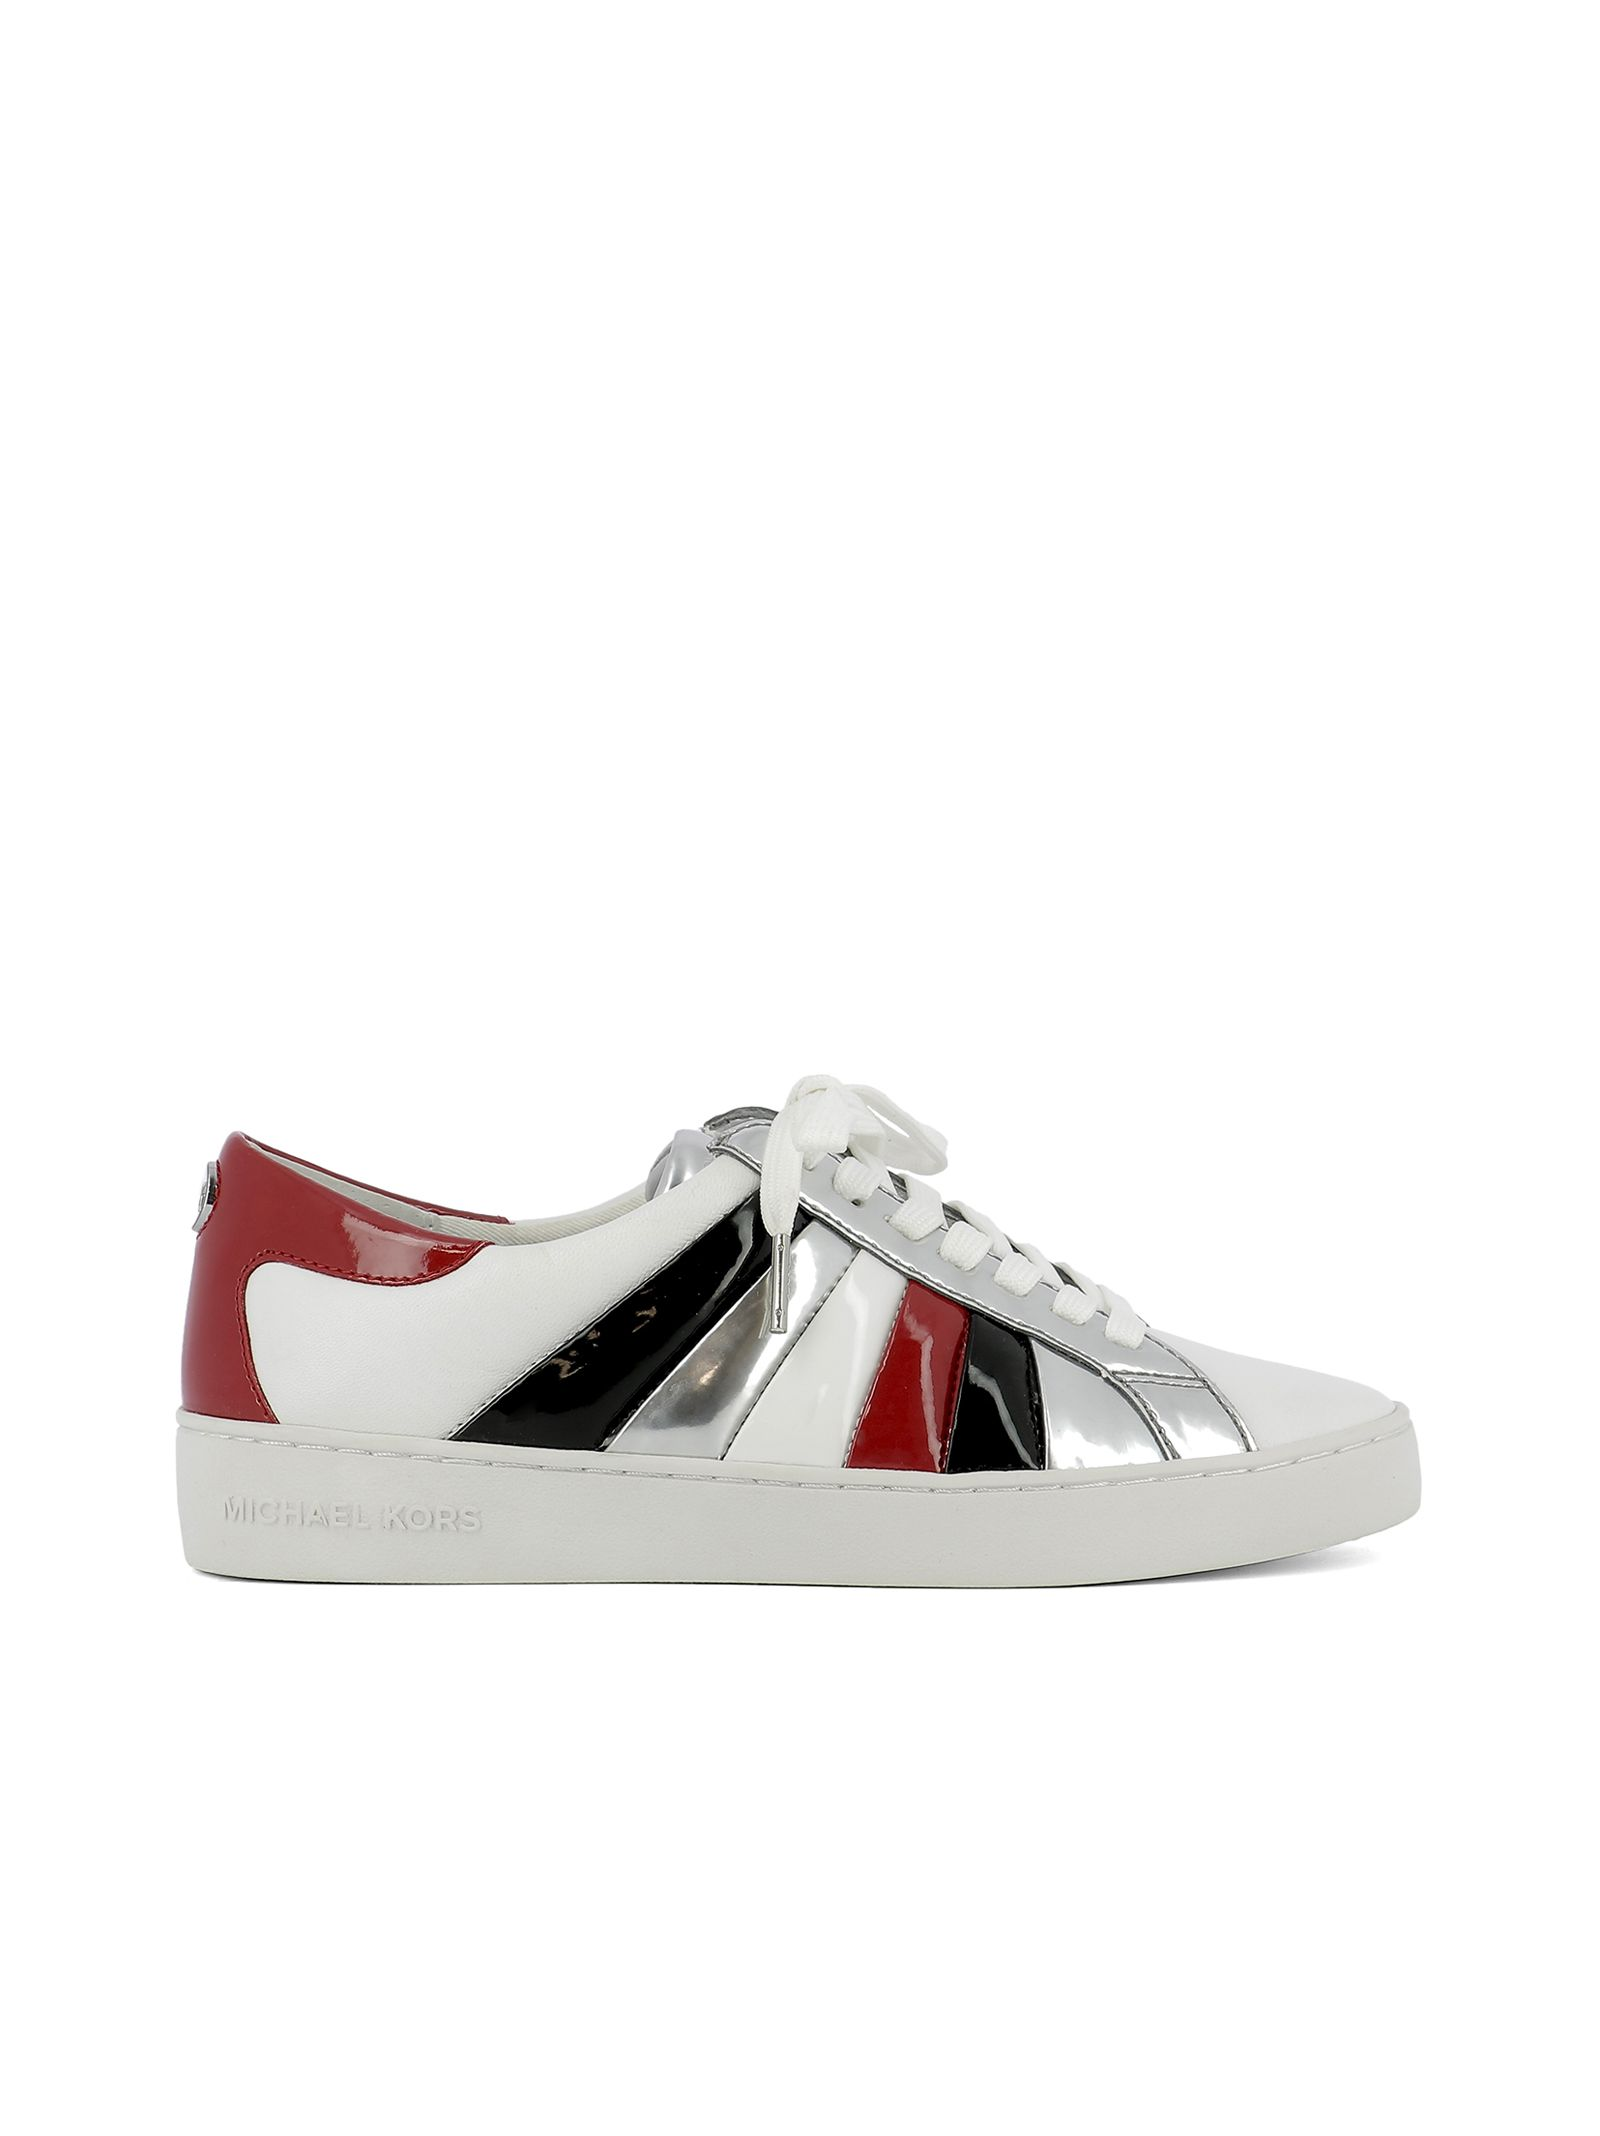 michael kors female white leather sneakers